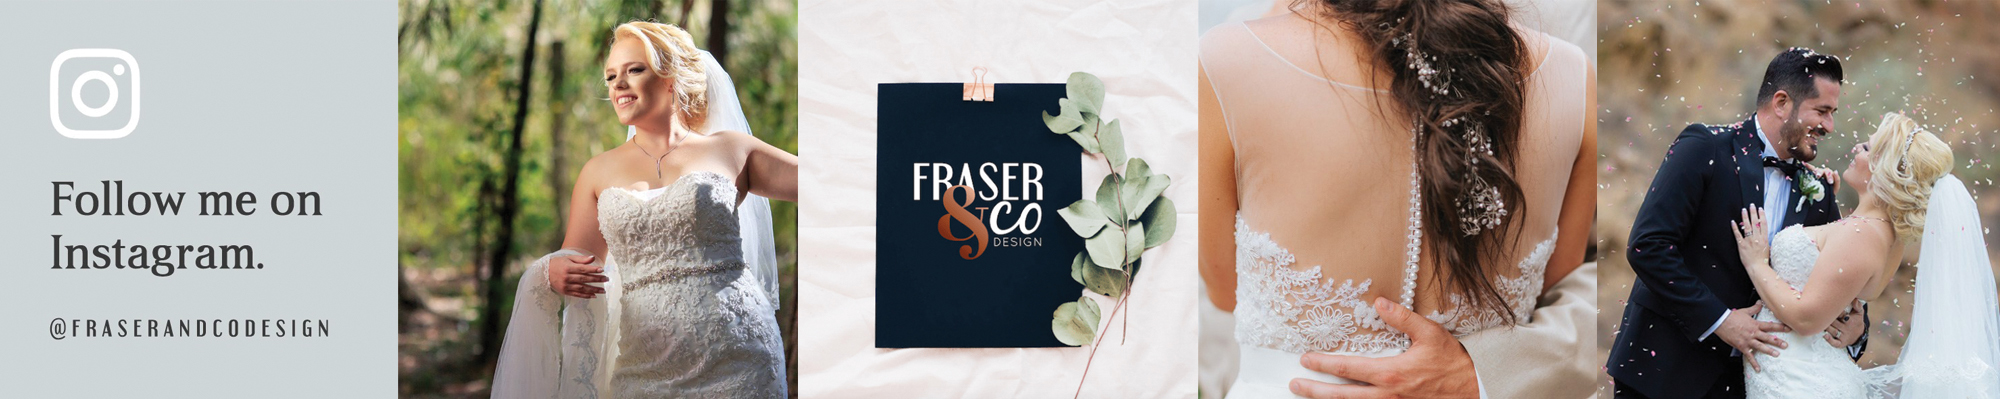 Fraser & Co Design   Logo, brand & website design for wedding businesses. Bringing your brand identity to life, forging connection with your target audience that generate's results. FREE stock photos and resources for wedding entrepreneurs. www.fraserandcodesign.co.uk #weddingbusinessdesign #websitedesign #logo #branding #brandidentity #customlogo #weddinginspiration #weddingbusiness #weddingbiz #uklogodesigner #weddingbusinessbranding